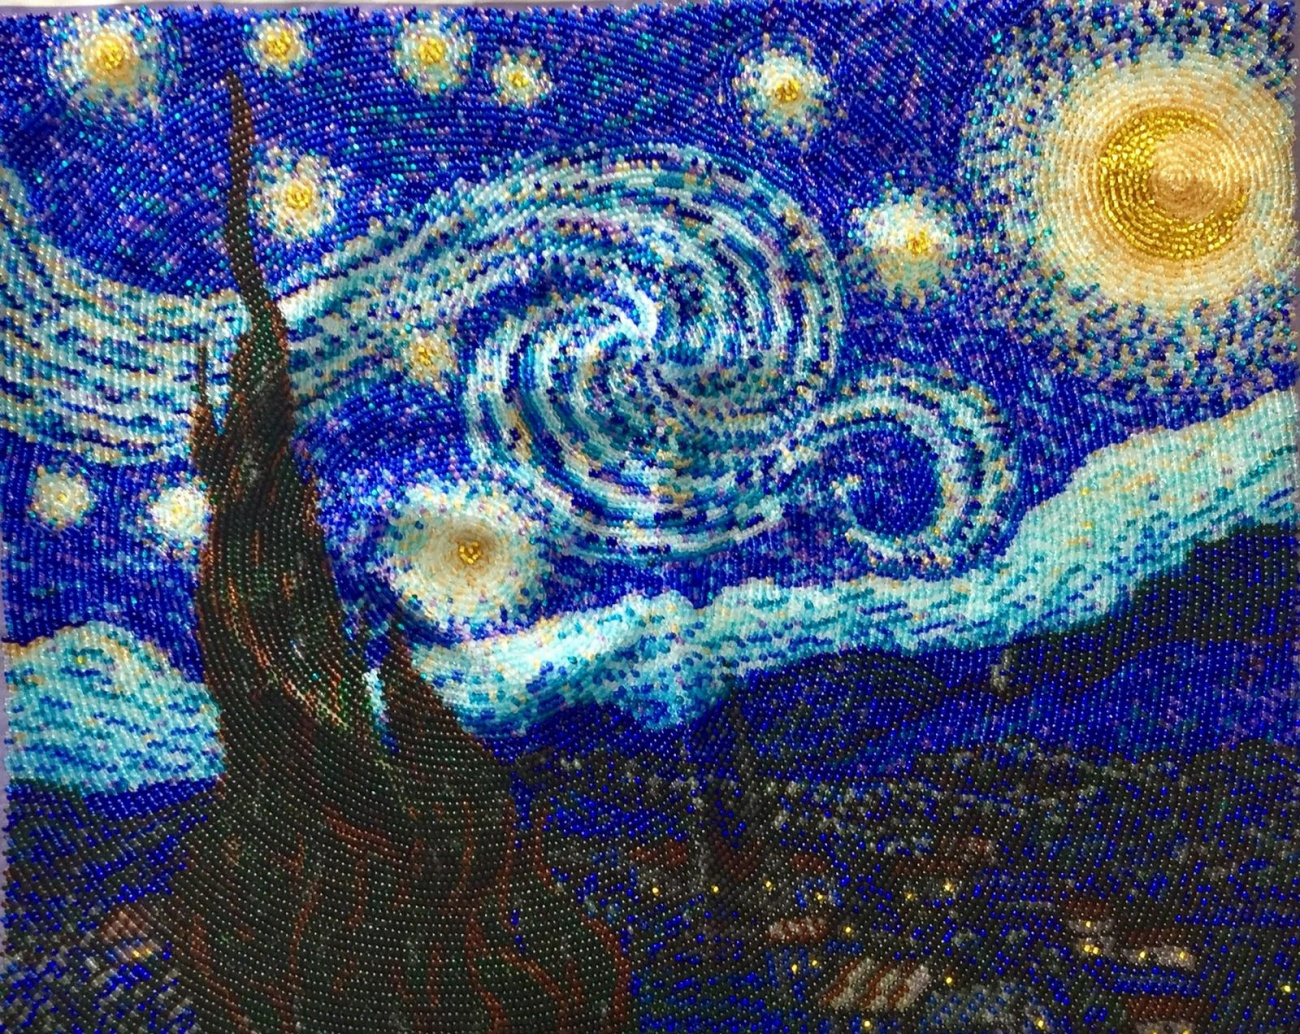 Starry night. picture embroidered wit...